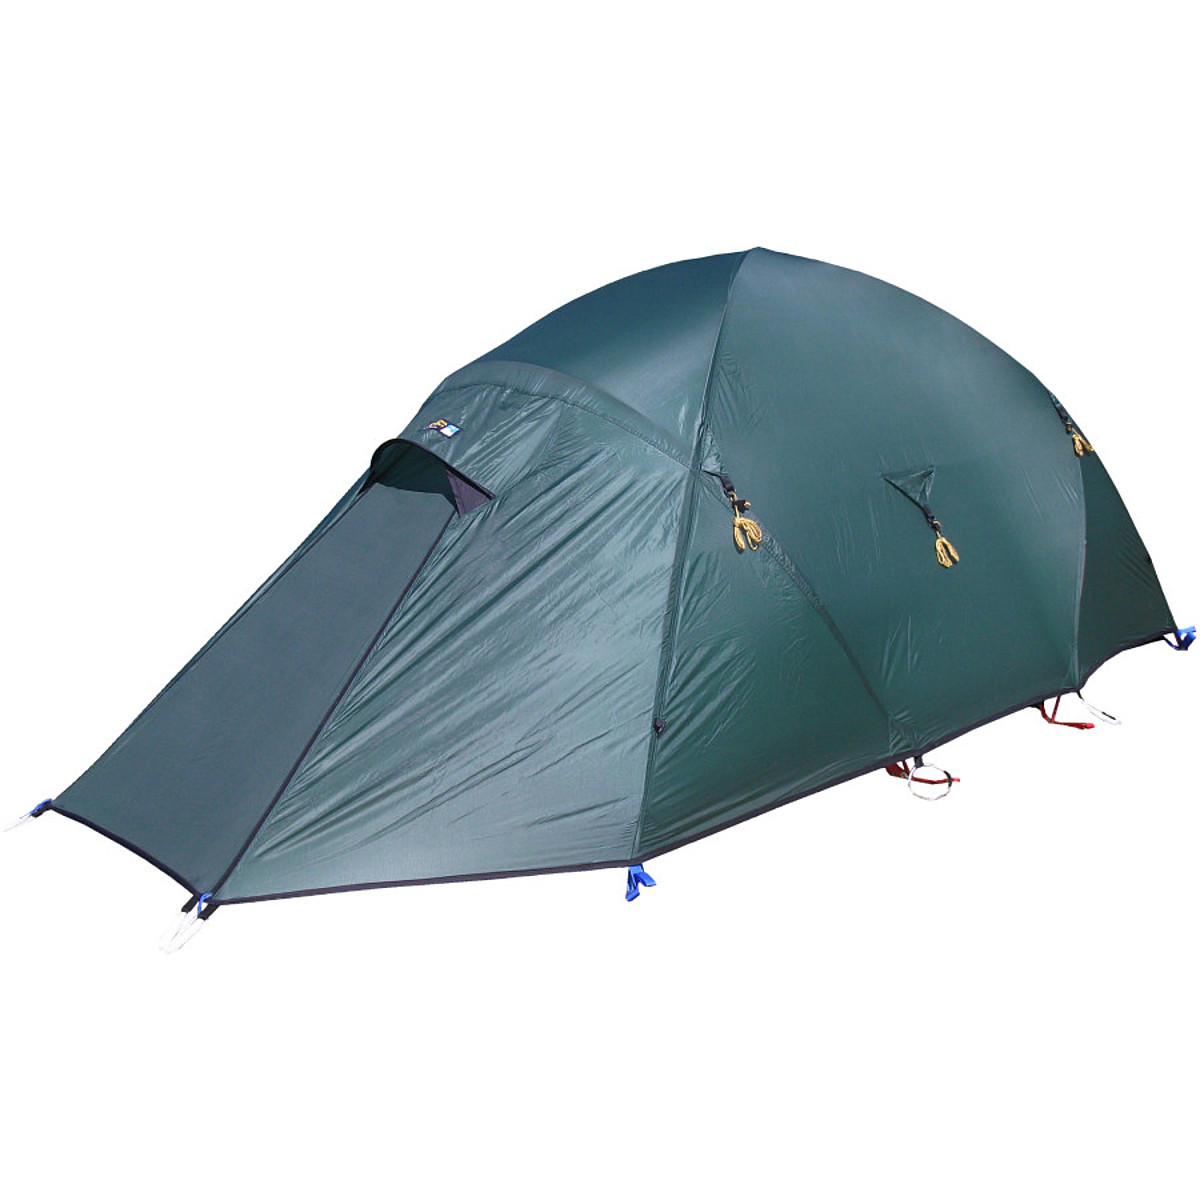 photo Terra Nova Ultra Quasar four-season tent  sc 1 st  Trailspace & Terra Nova Ultra Quasar Reviews - Trailspace.com